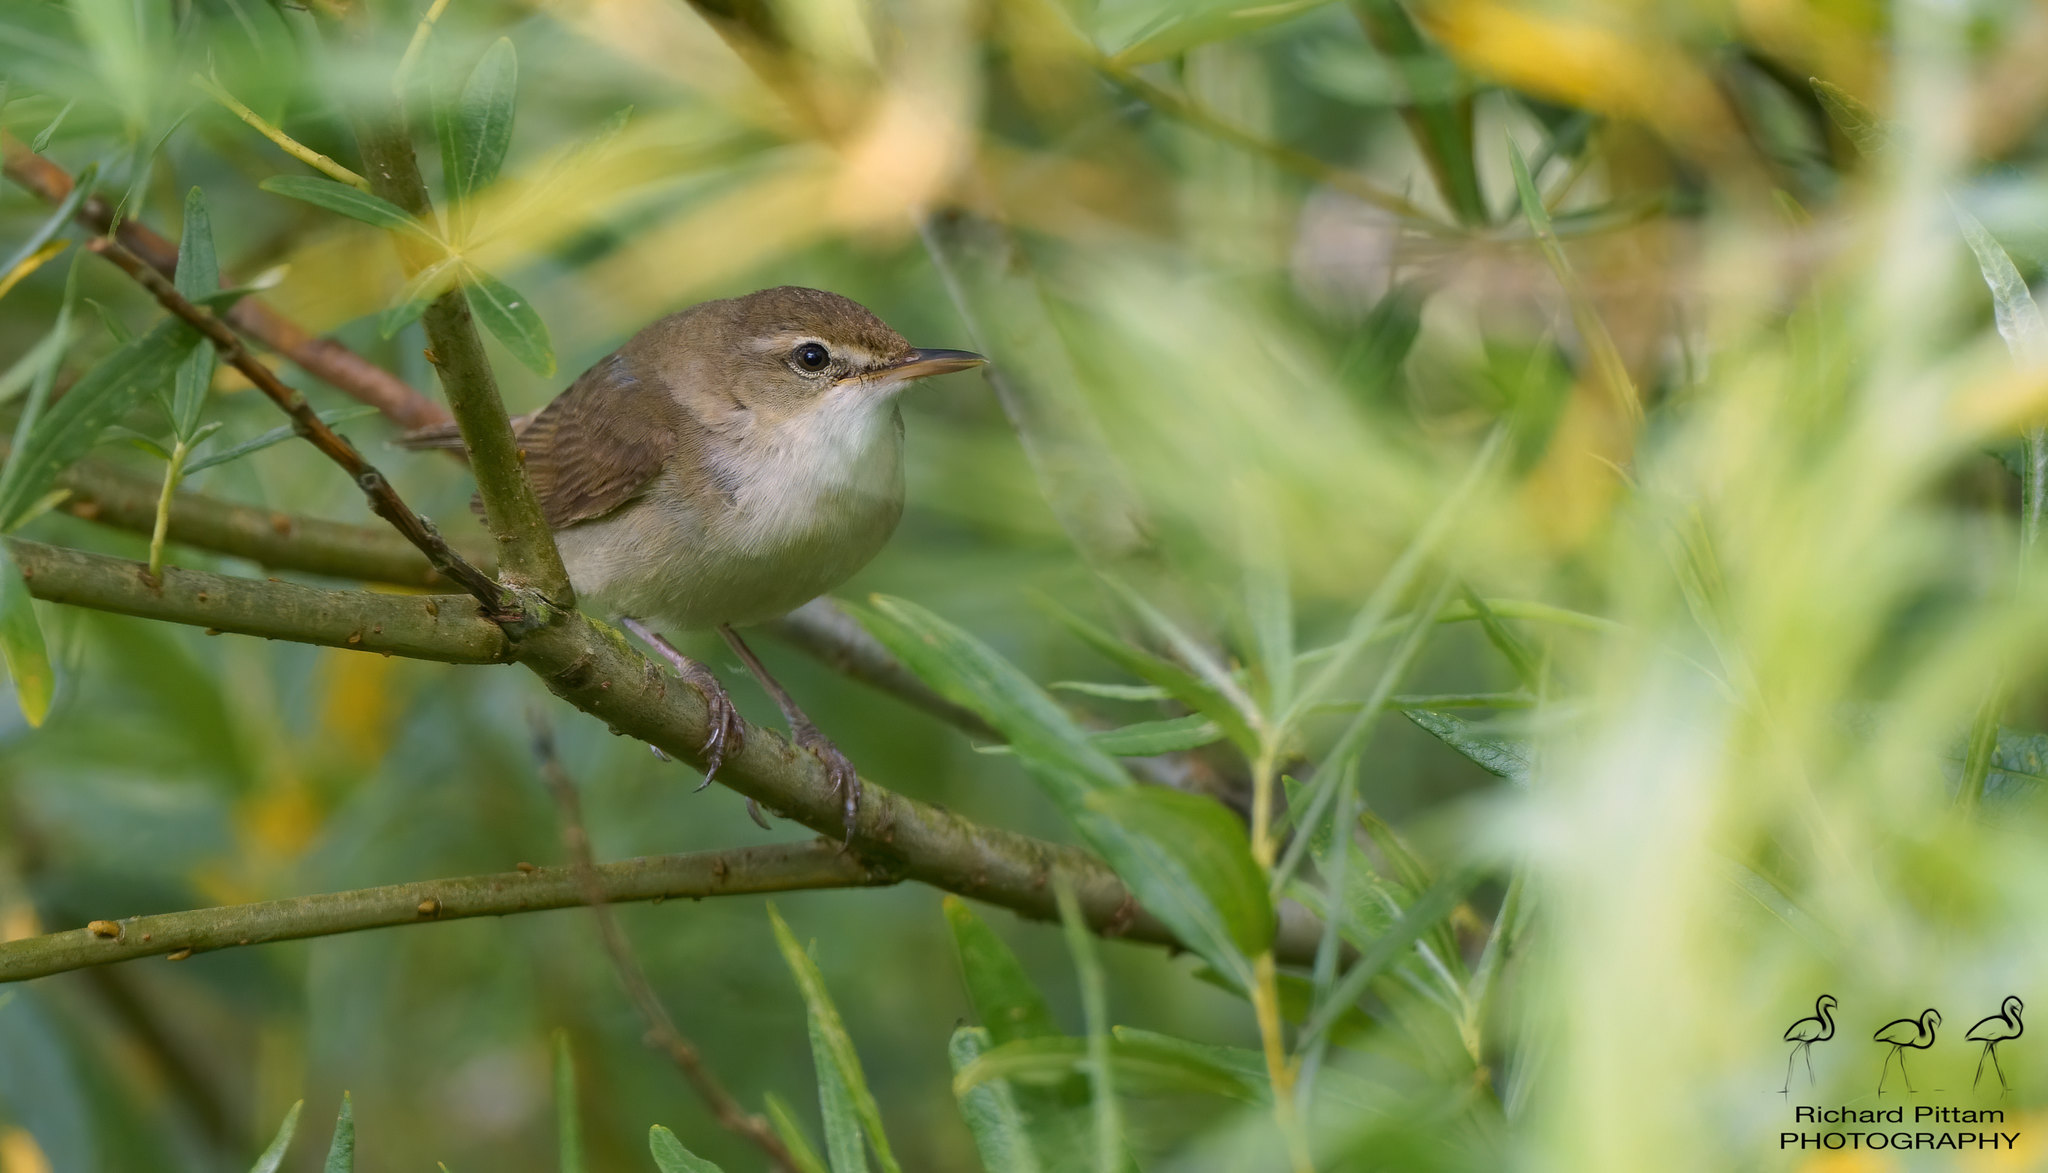 Blyth's Reed Warbler - not much for 11 miles of walking...